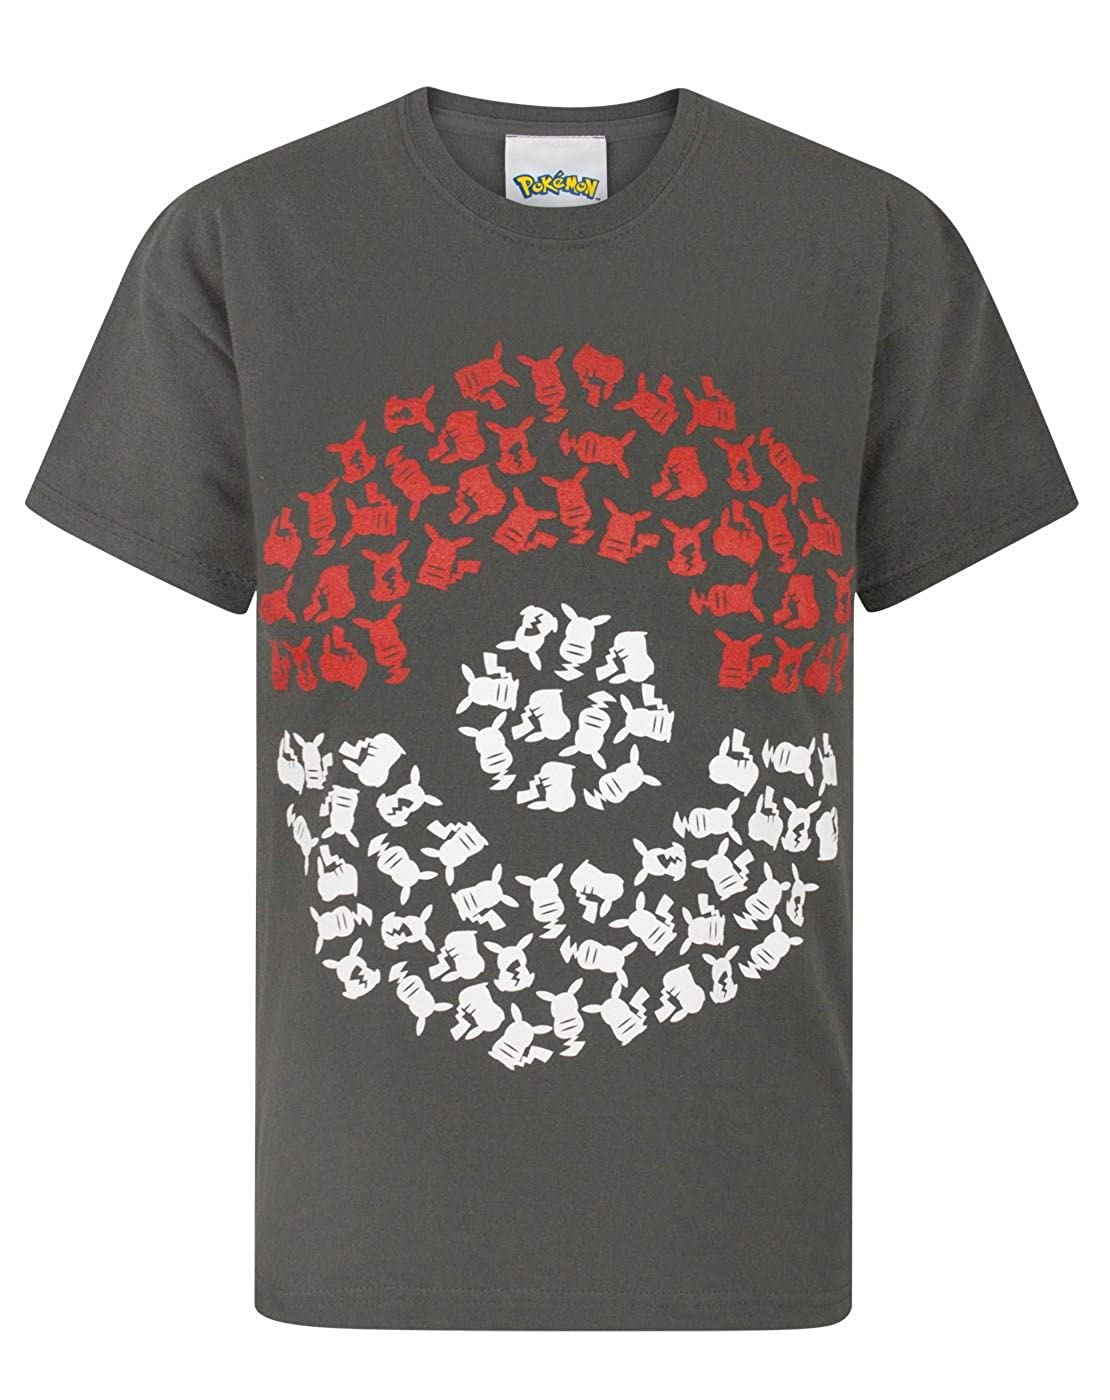 Pokèmon Pika Pokeball Boy's T-Shirt Fashion UK